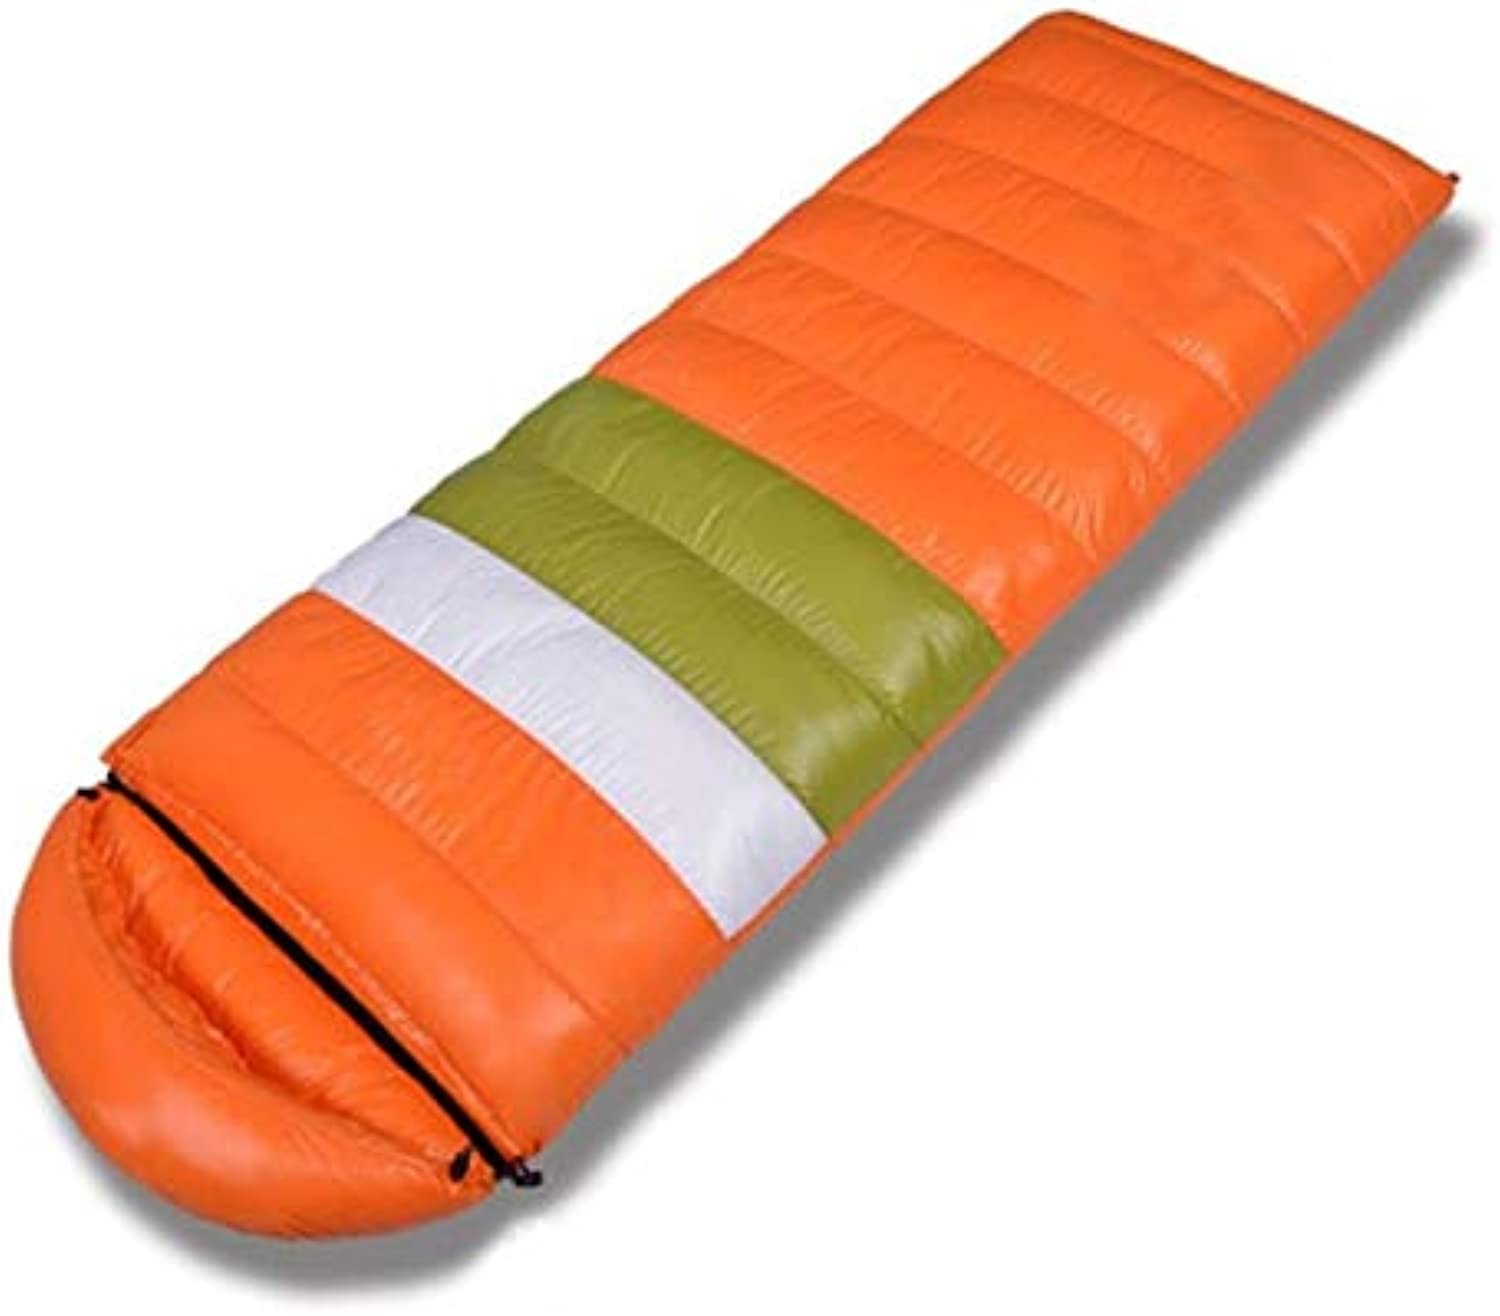 Schlafsack Duck Down Sleeping Bag Outdoor Outdoor Outdoor Camping Down Sleeping Bag Envelope Schlafsack Length Thicken Ultralight Baffle Design Bags 800G Orange grün B07NWGL1BK  Qualitätsprodukte d51798